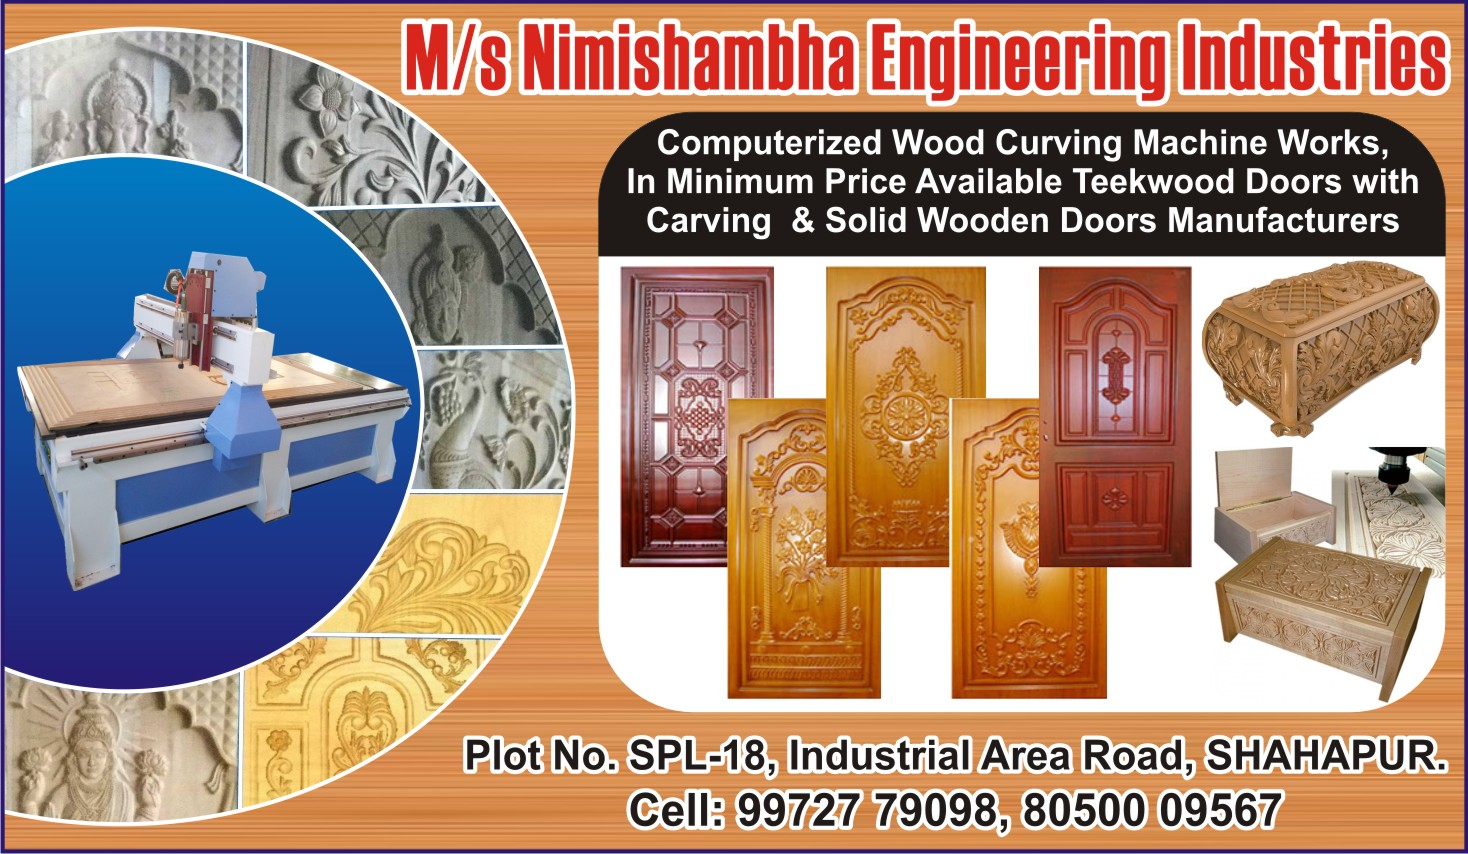 Nimishambha  Engineering Industries